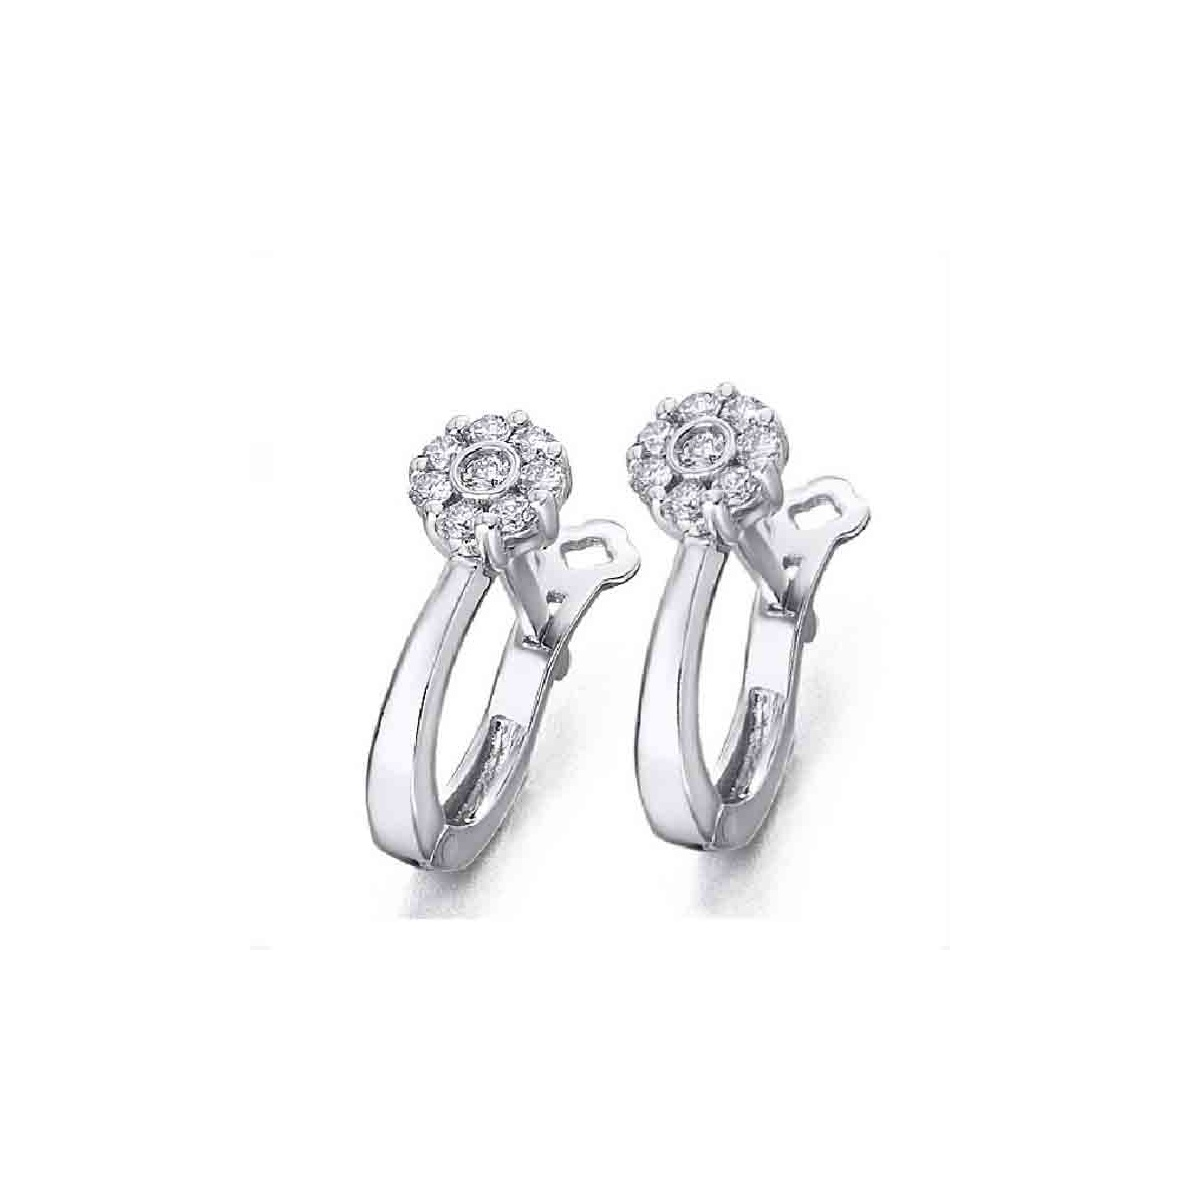 Pendientes oro blanco y Diamantes 0,20 quilates